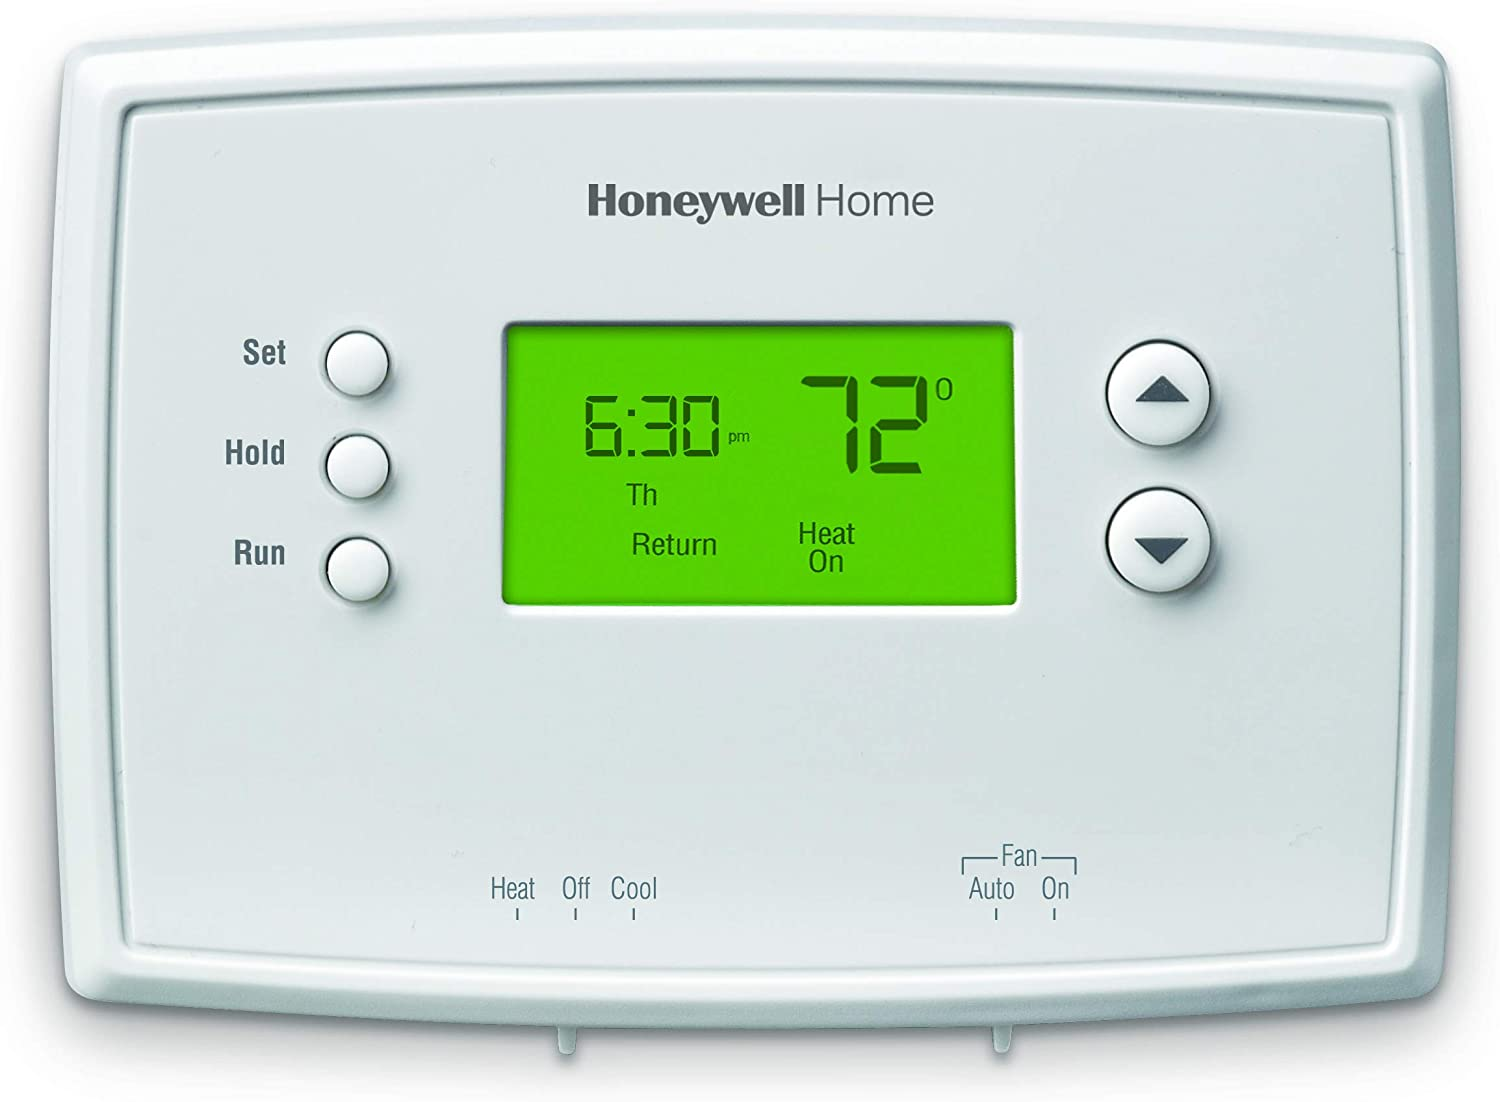 Honeywell Thermostat Rth7600 Wiring Diagram from images-na.ssl-images-amazon.com